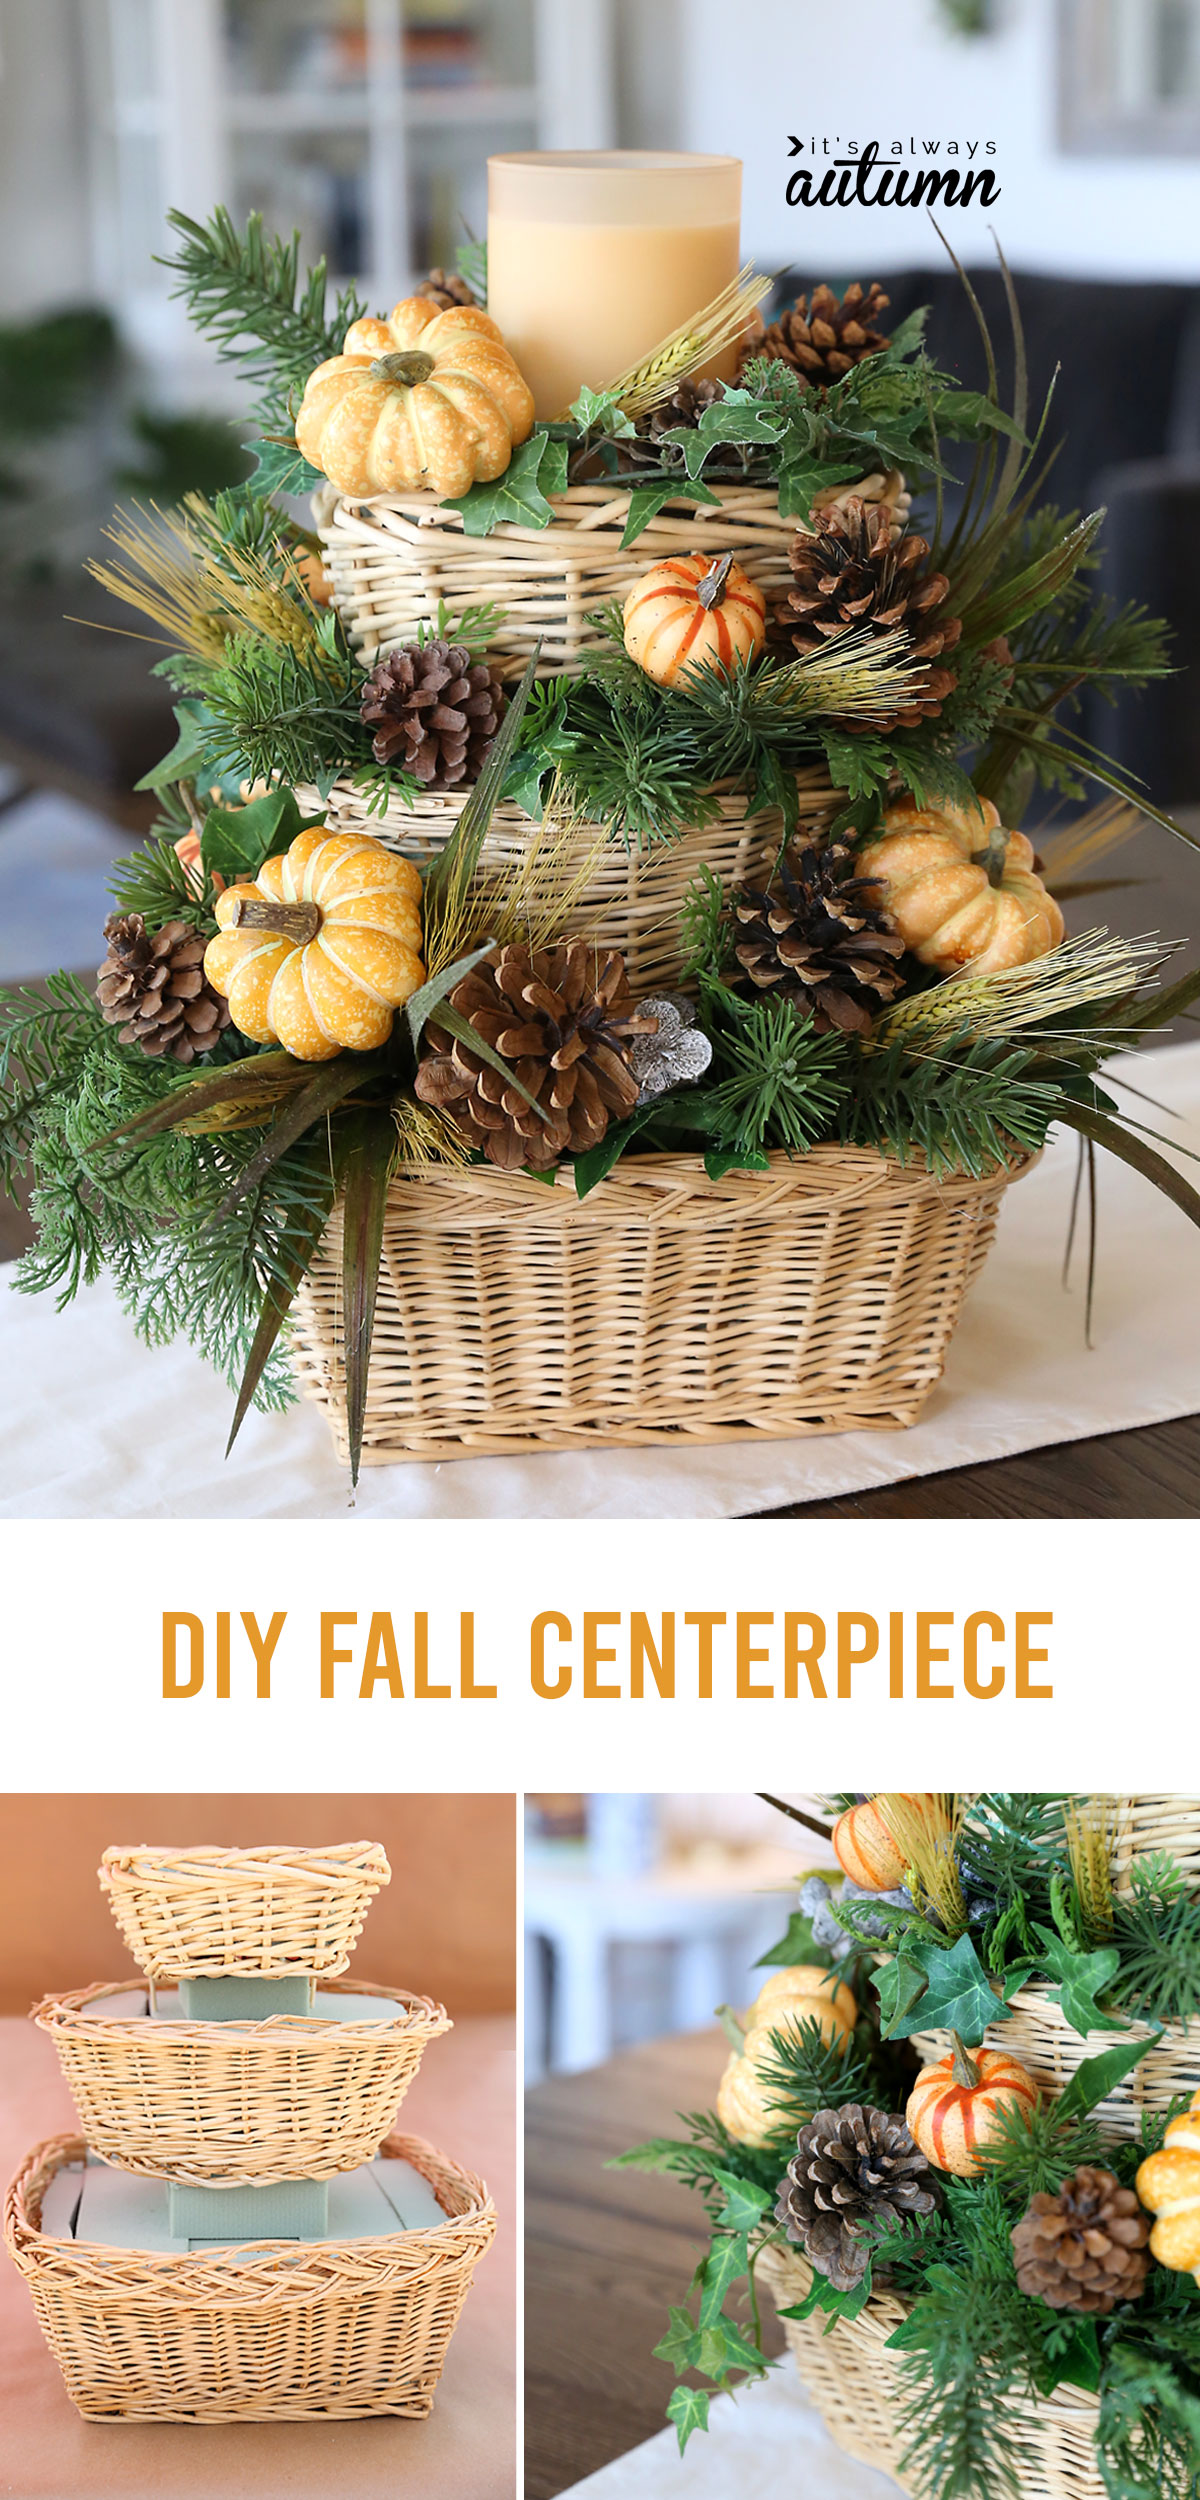 This beautiful DIY fall centerpiece can be made with items from the thrift store for about $25!